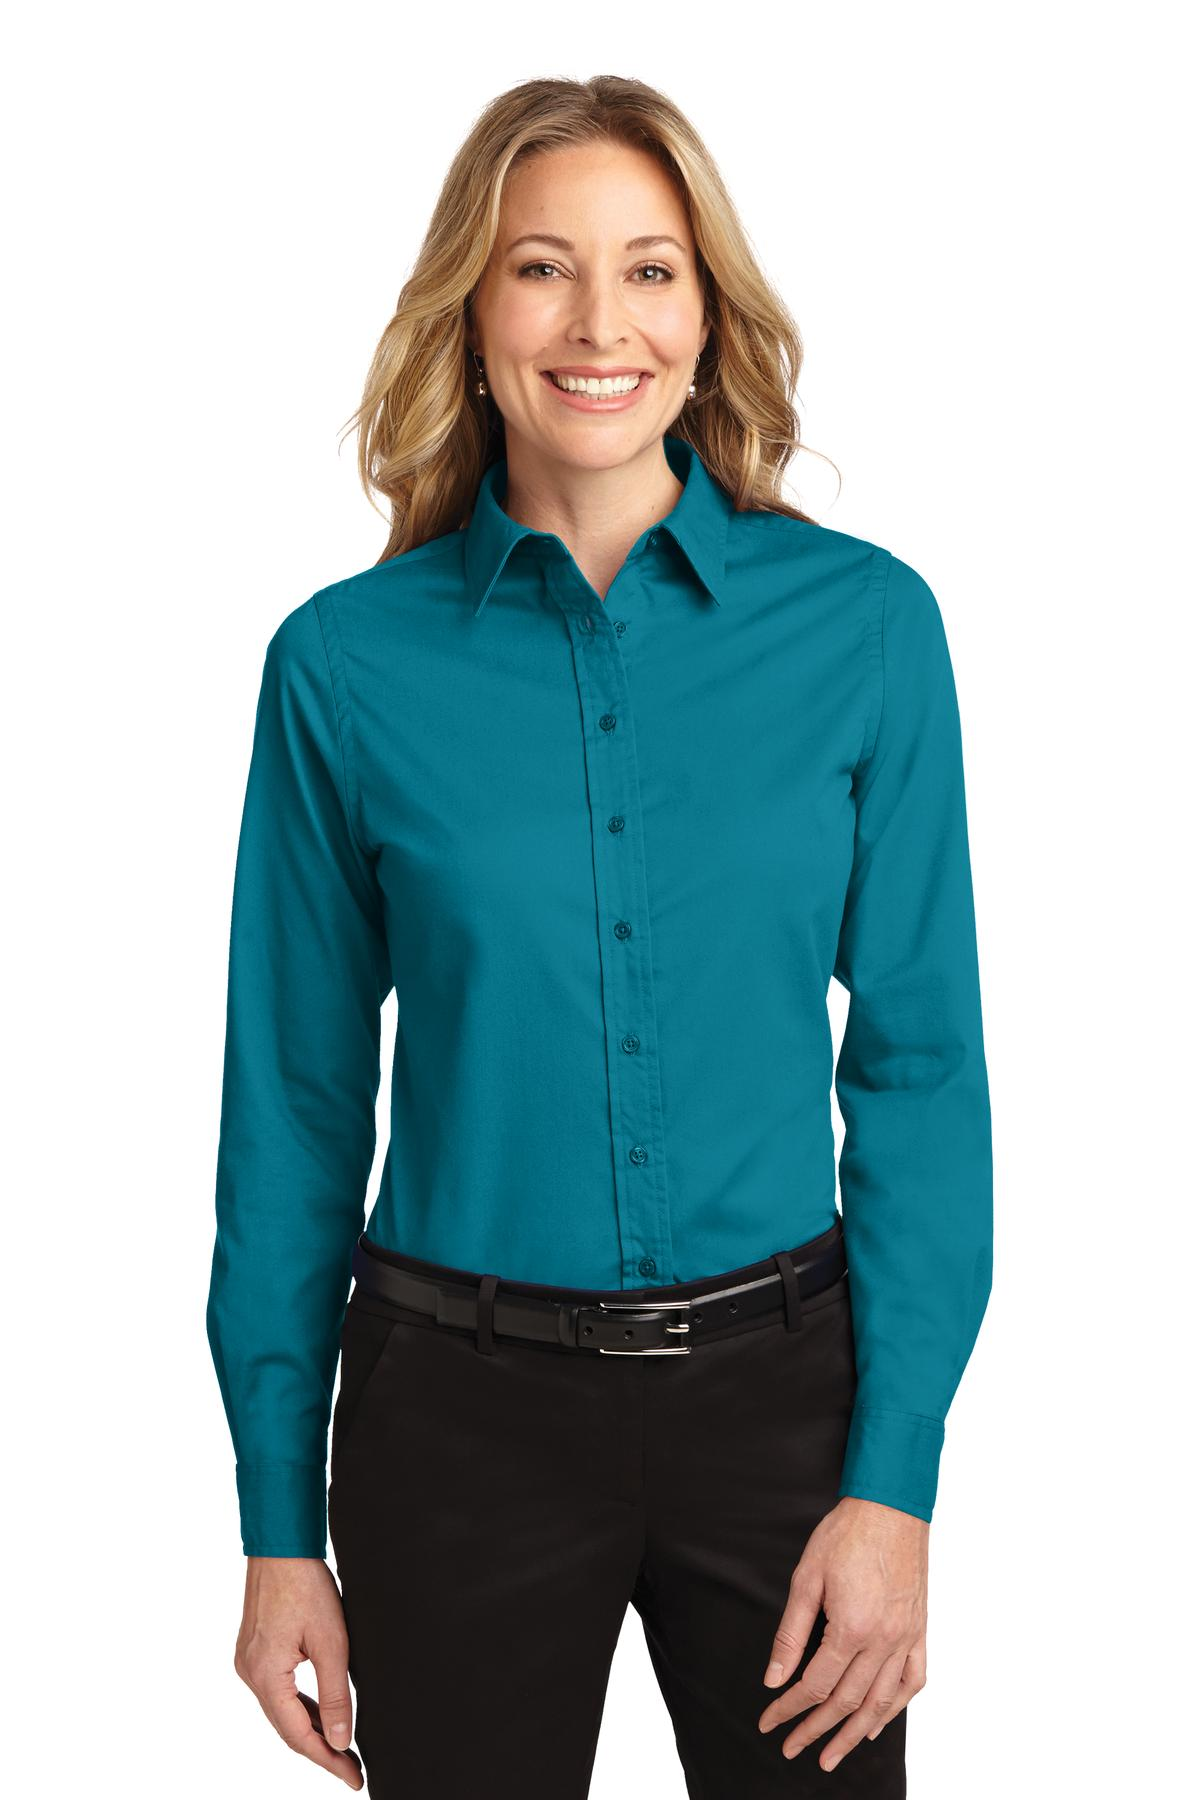 Port Authority ®  Ladies Long Sleeve Easy Care Shirt.  L608 - Teal Green